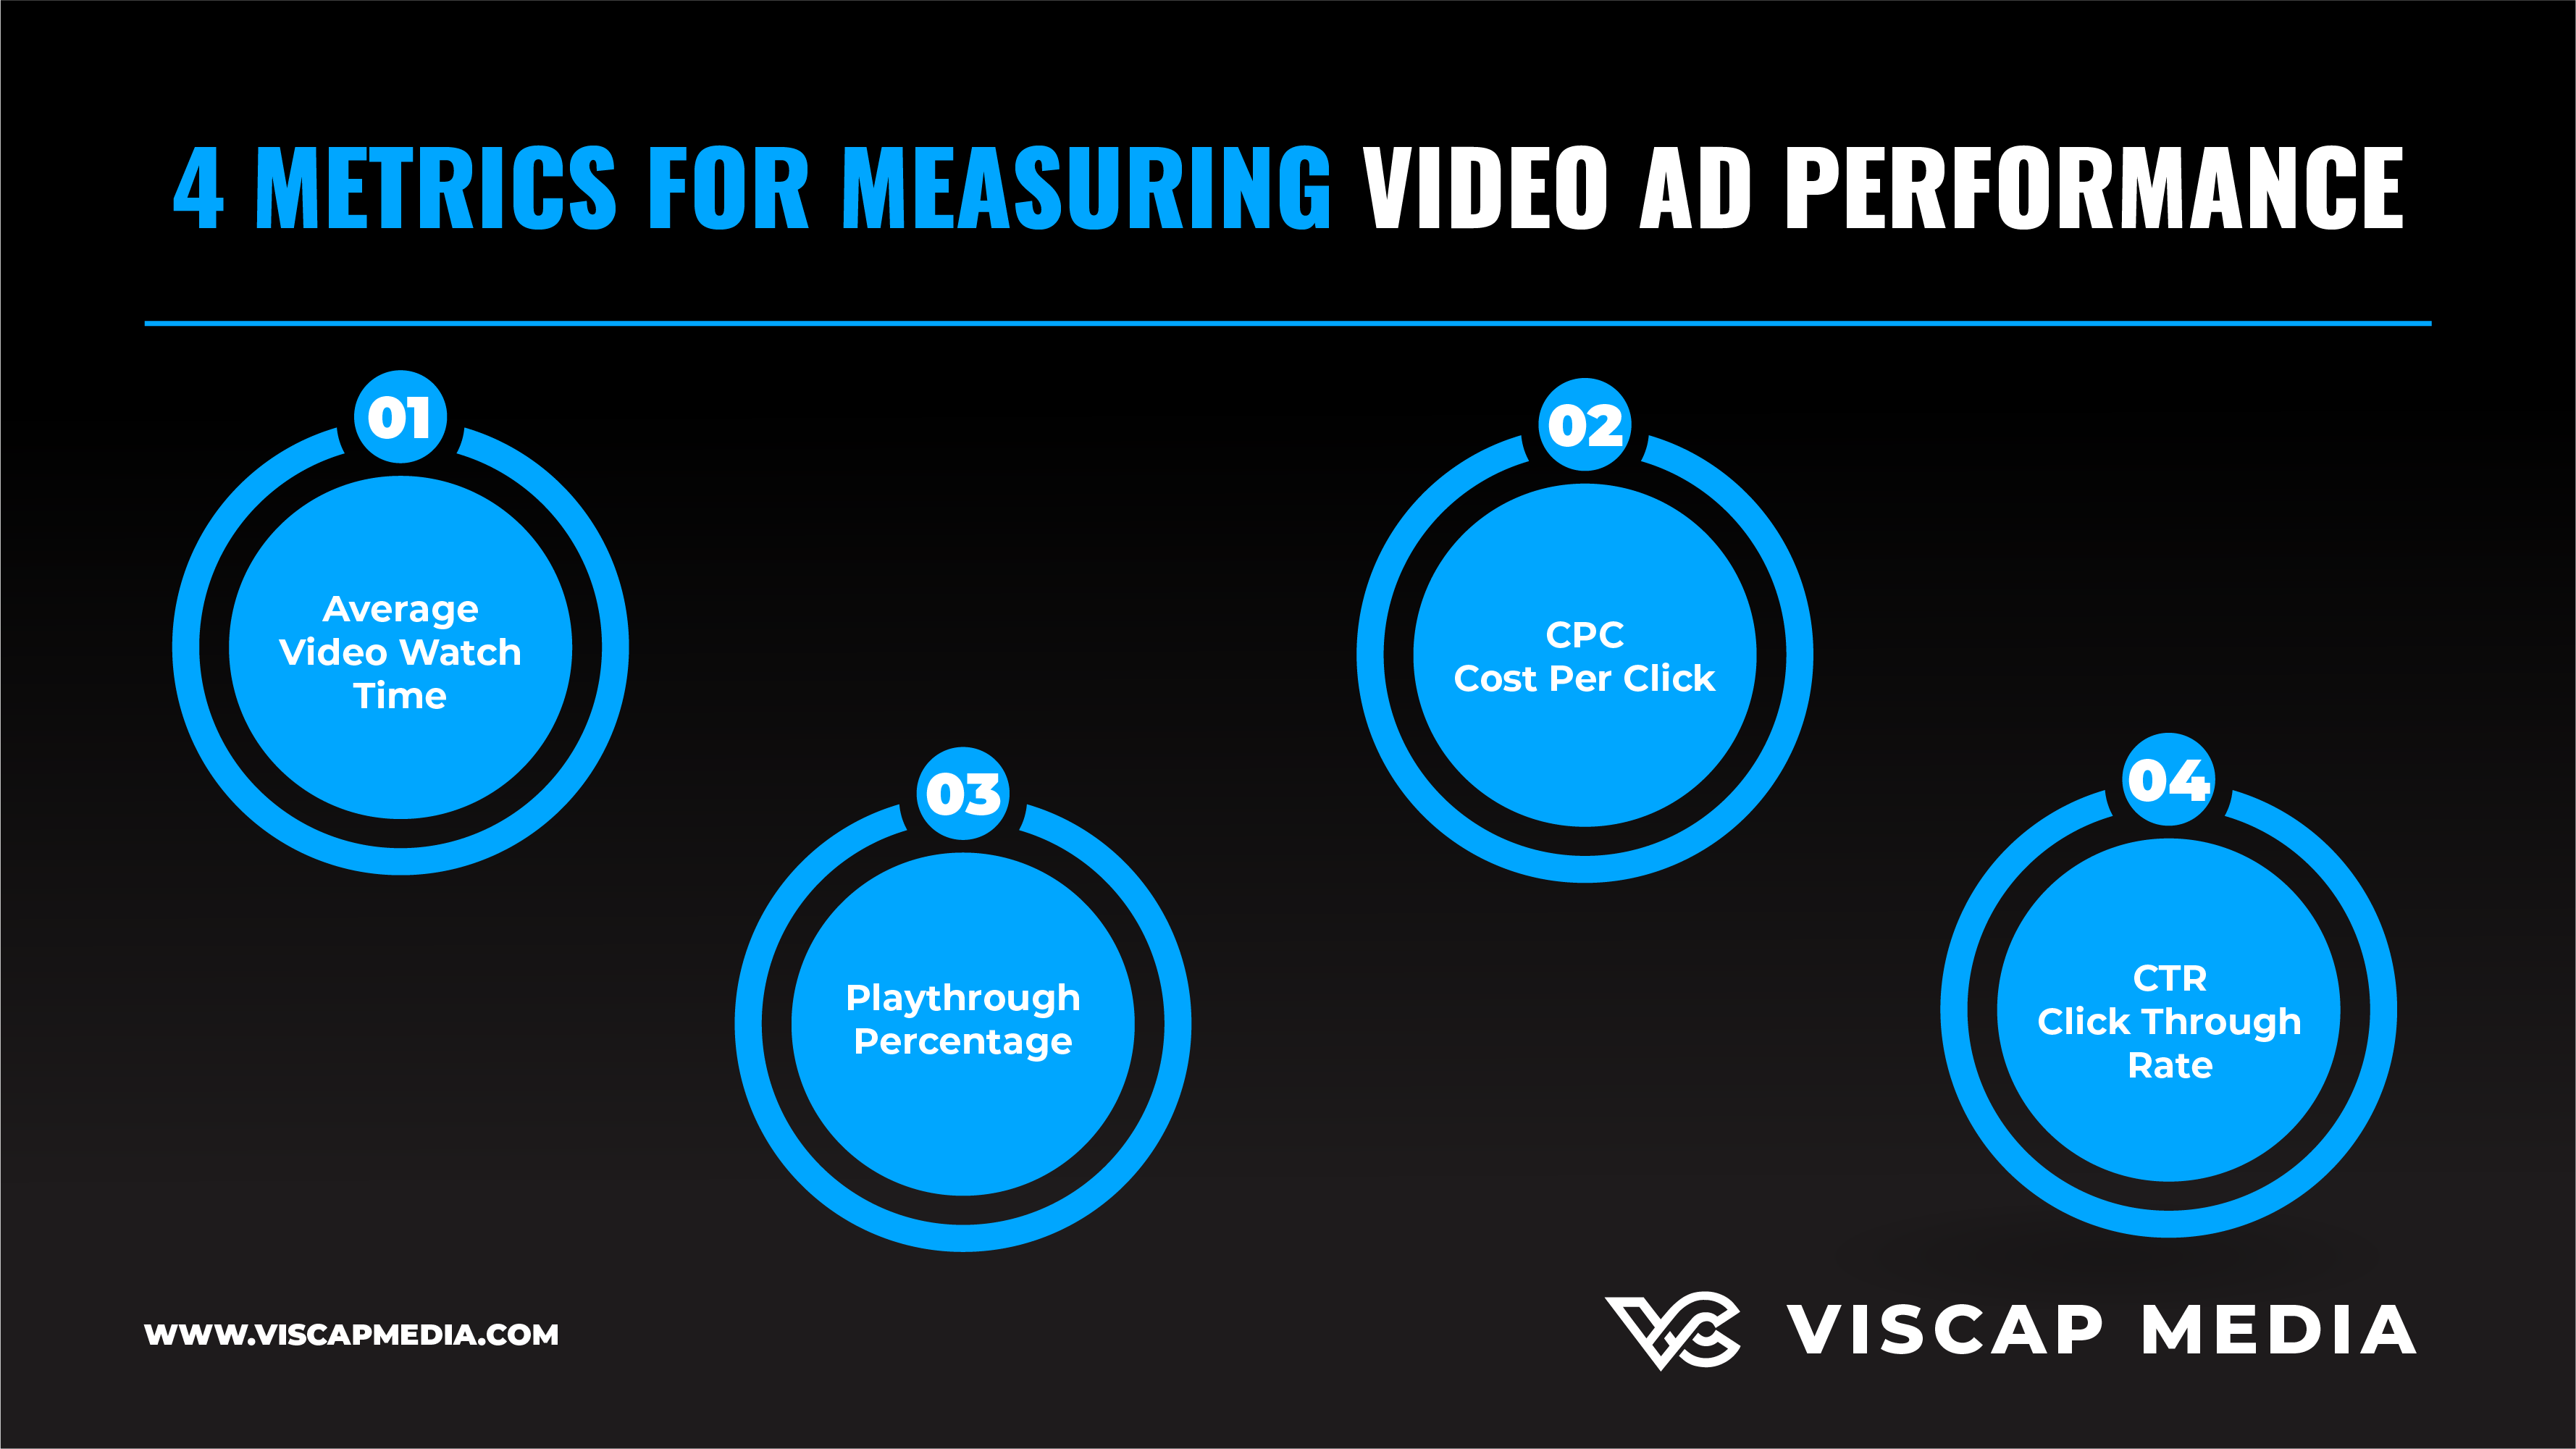 4 Metrics For Measuring Video Ad Performance Infographic For High-Converting Video Ads